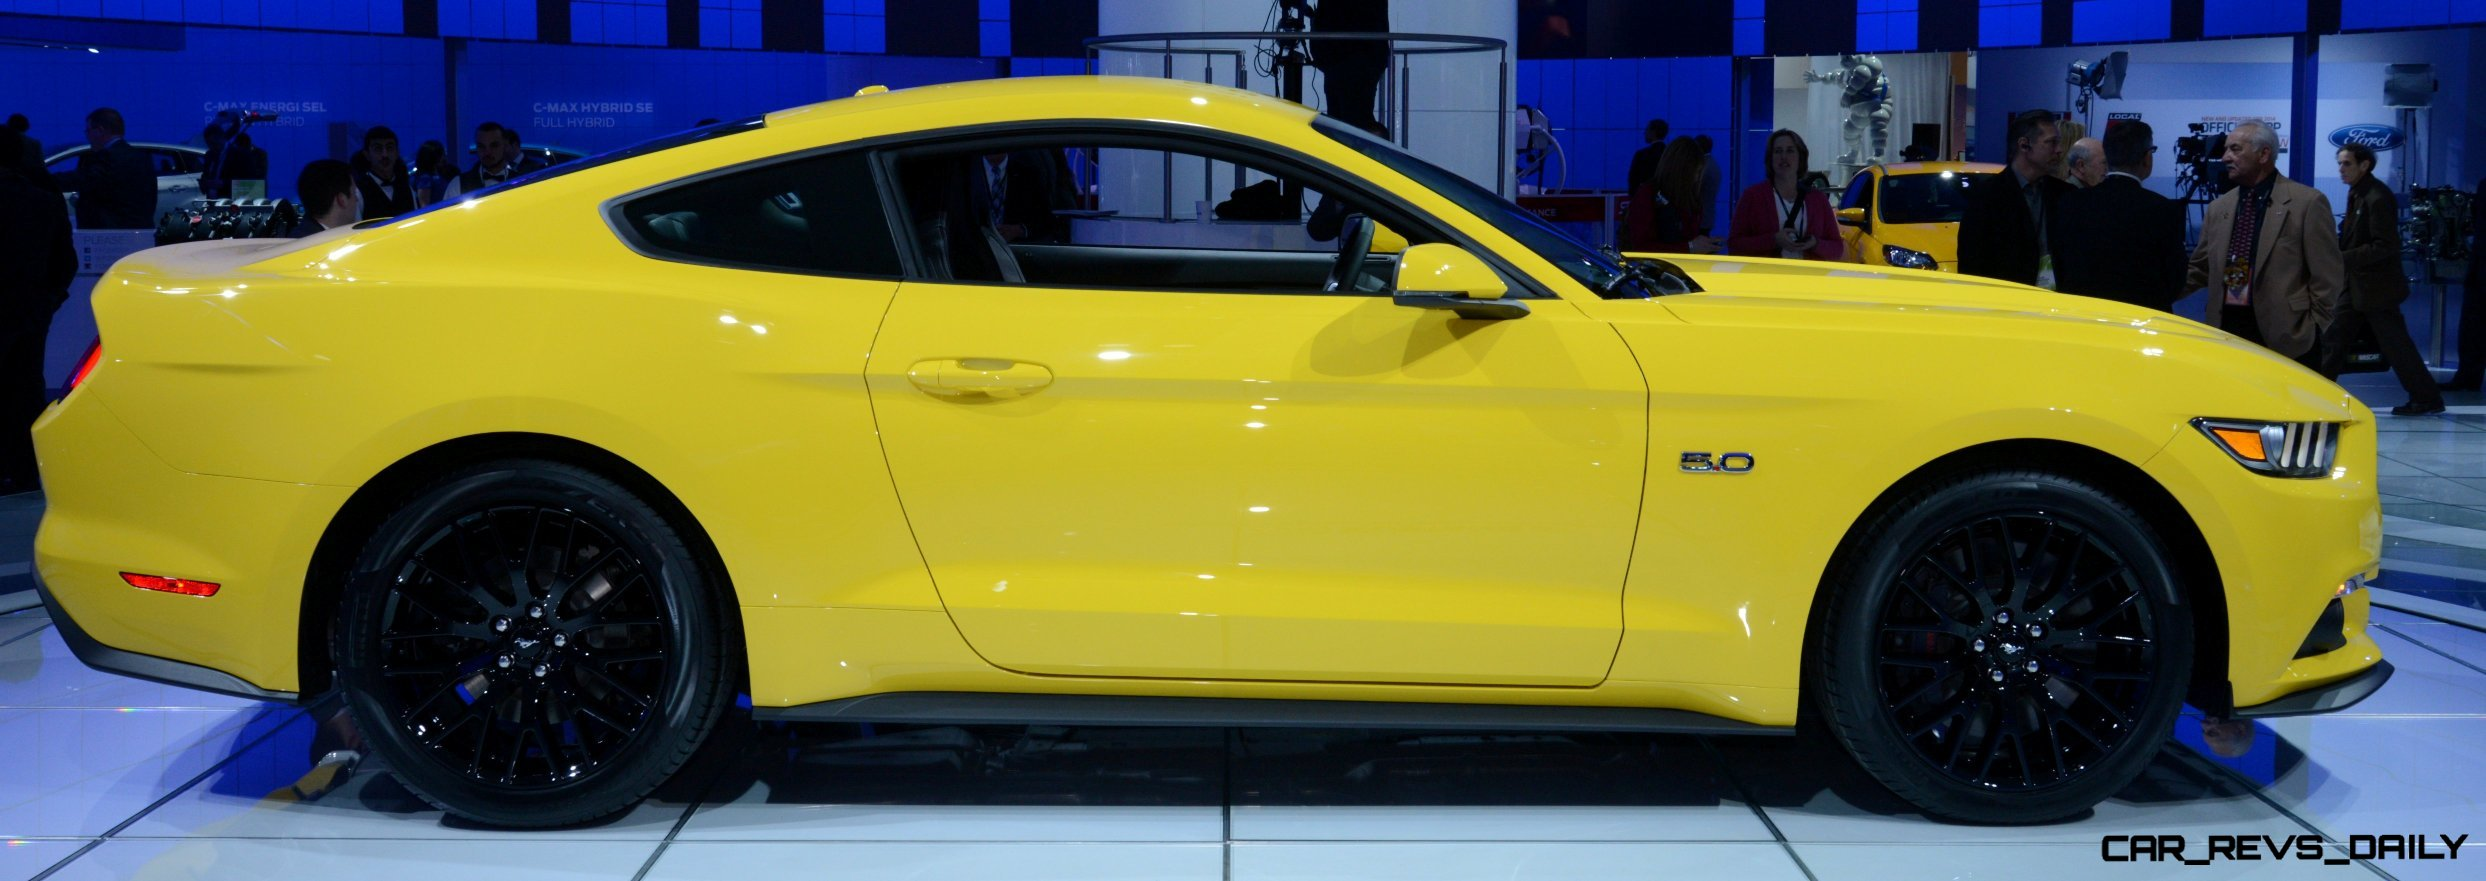 2015 Ford Mustang GT Mean Lean and Ready To Brawl in Latest Real Life Photos Yellow GT 171 photo